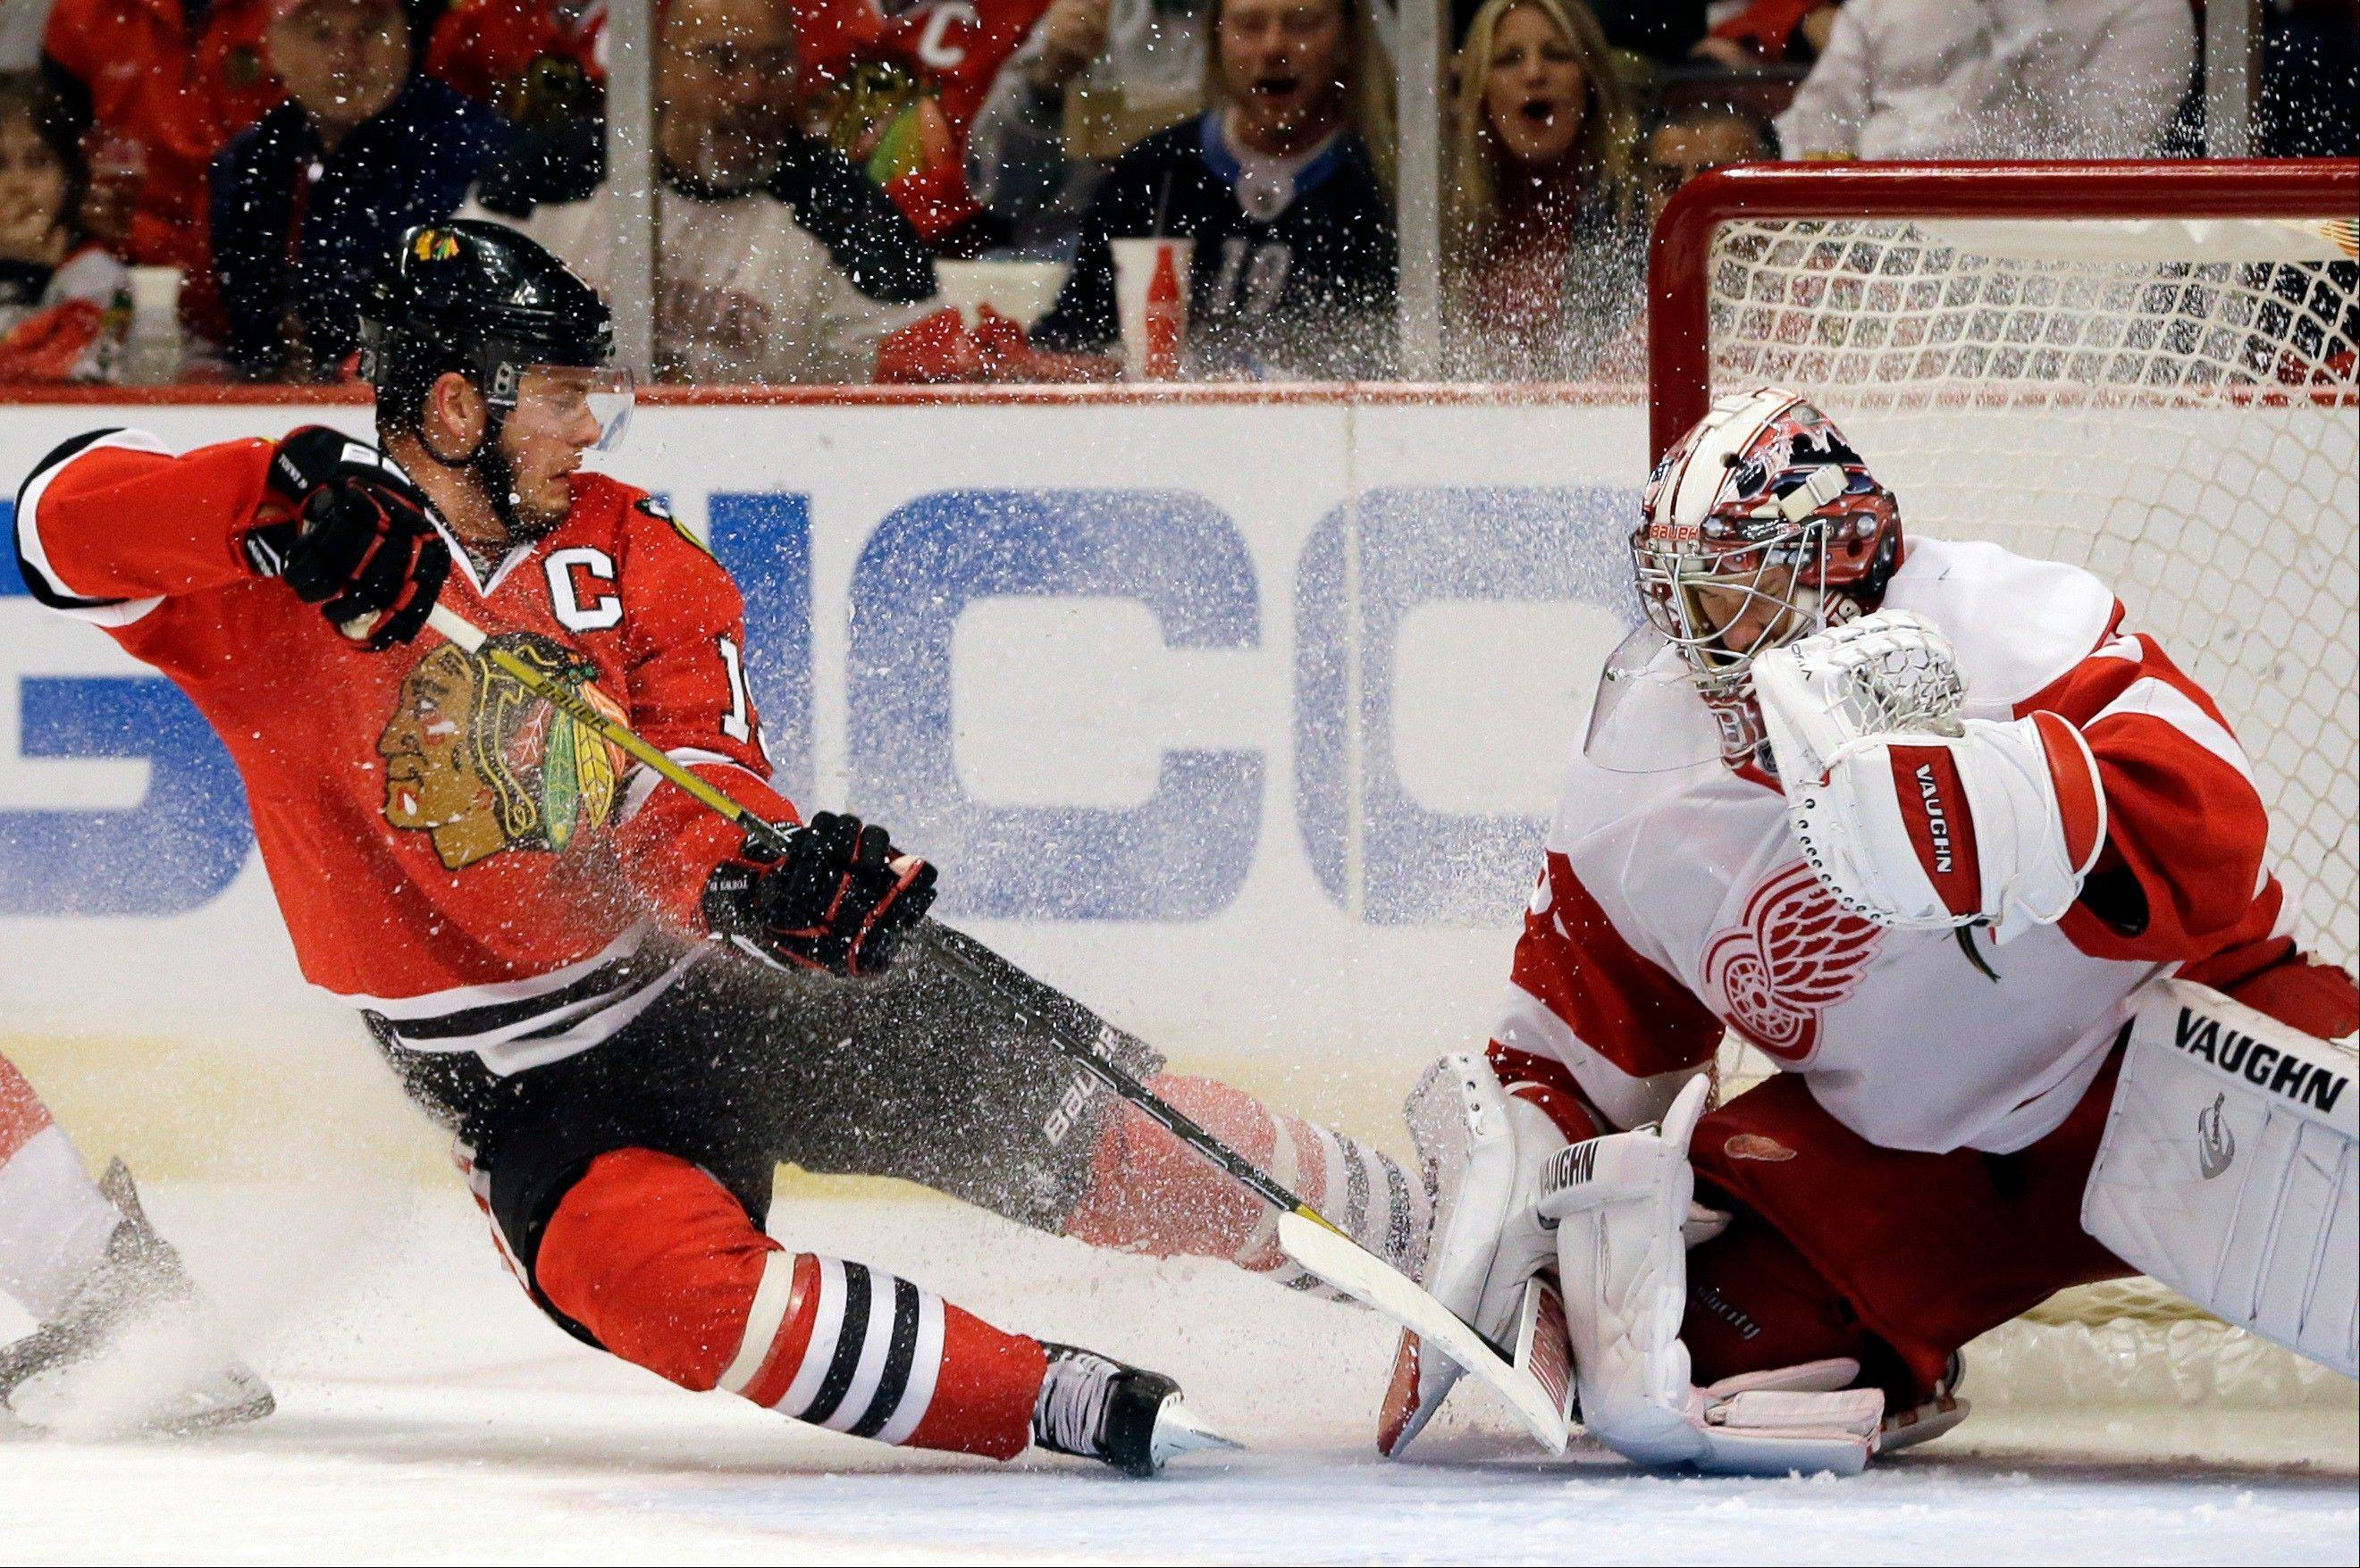 Detroit Red Wings goalie Jimmy Howard, right, saves a shot by Chicago Blackhawks' Jonathan Toews, left, during the second period of Game 5 of the NHL hockey Stanley Cup playoffs Western Conference semifinals in Chicago, Saturday, May 25, 2013.